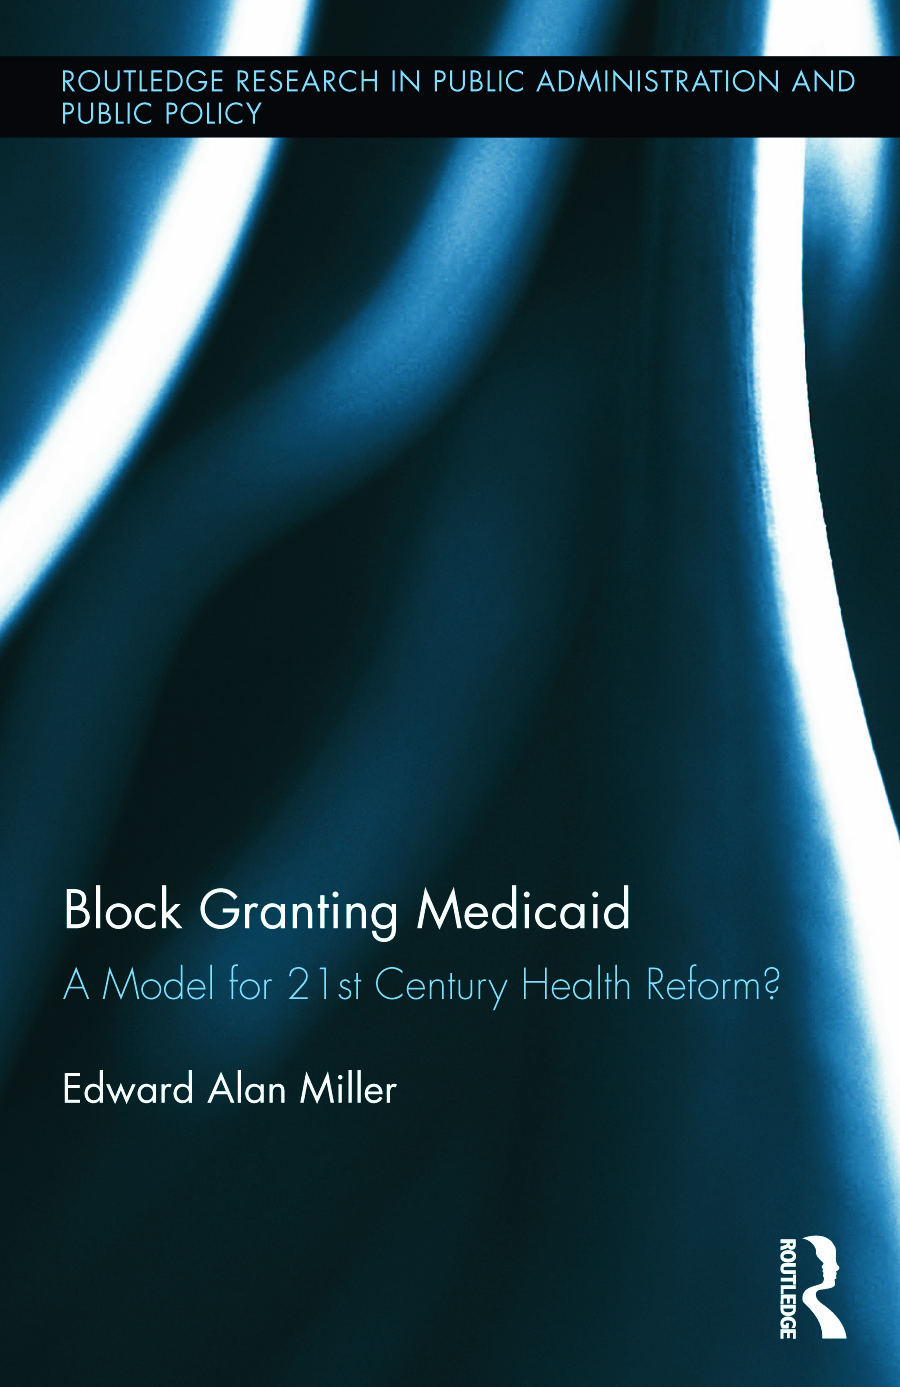 Block Granting Medicaid: A Model for 21st Century Health Reform? book cover